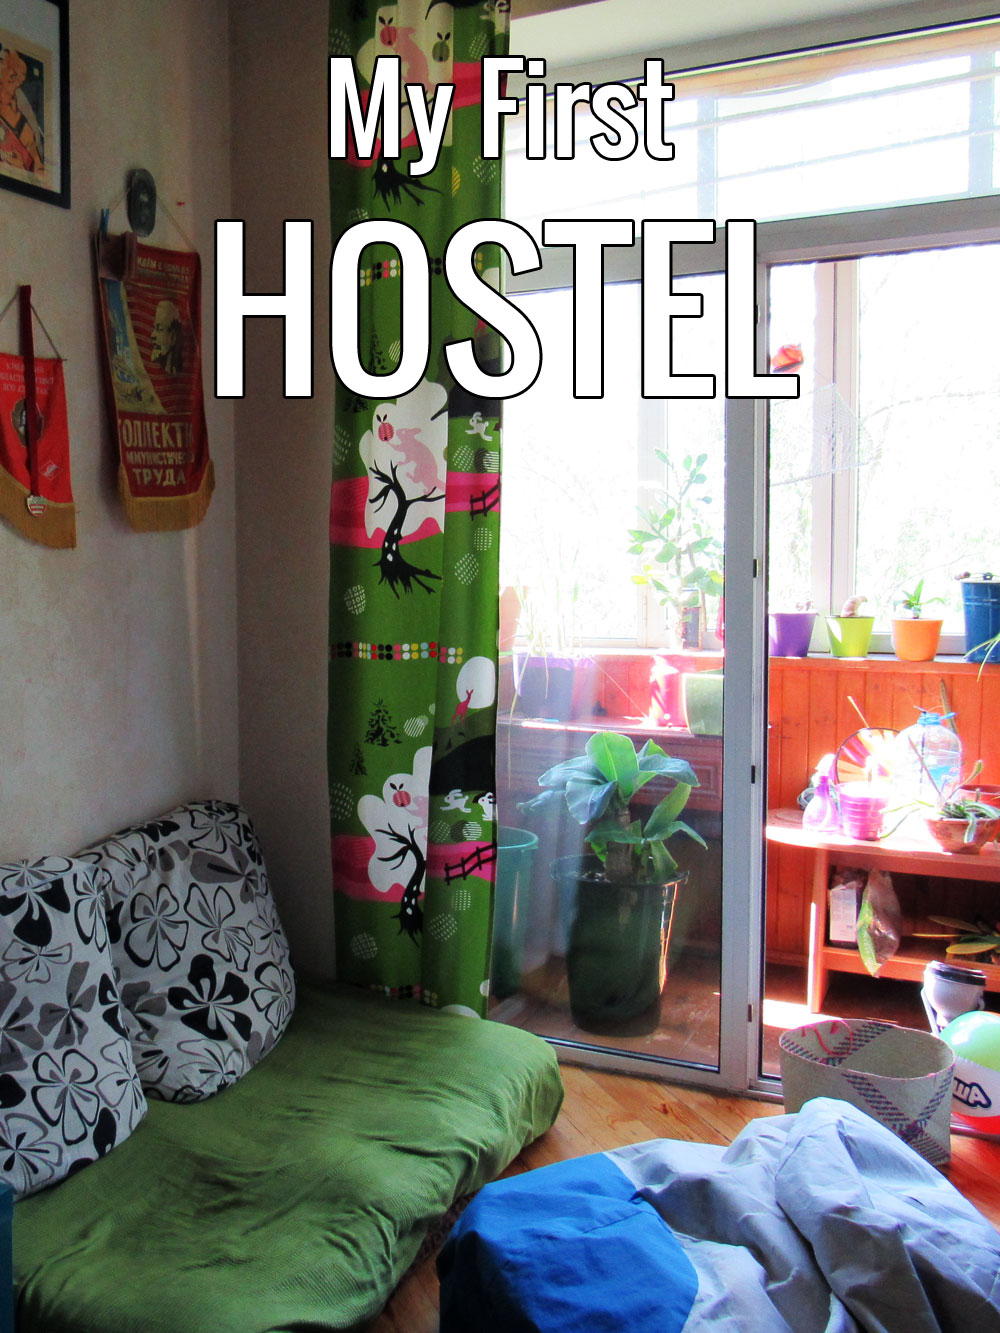 My First Hostel